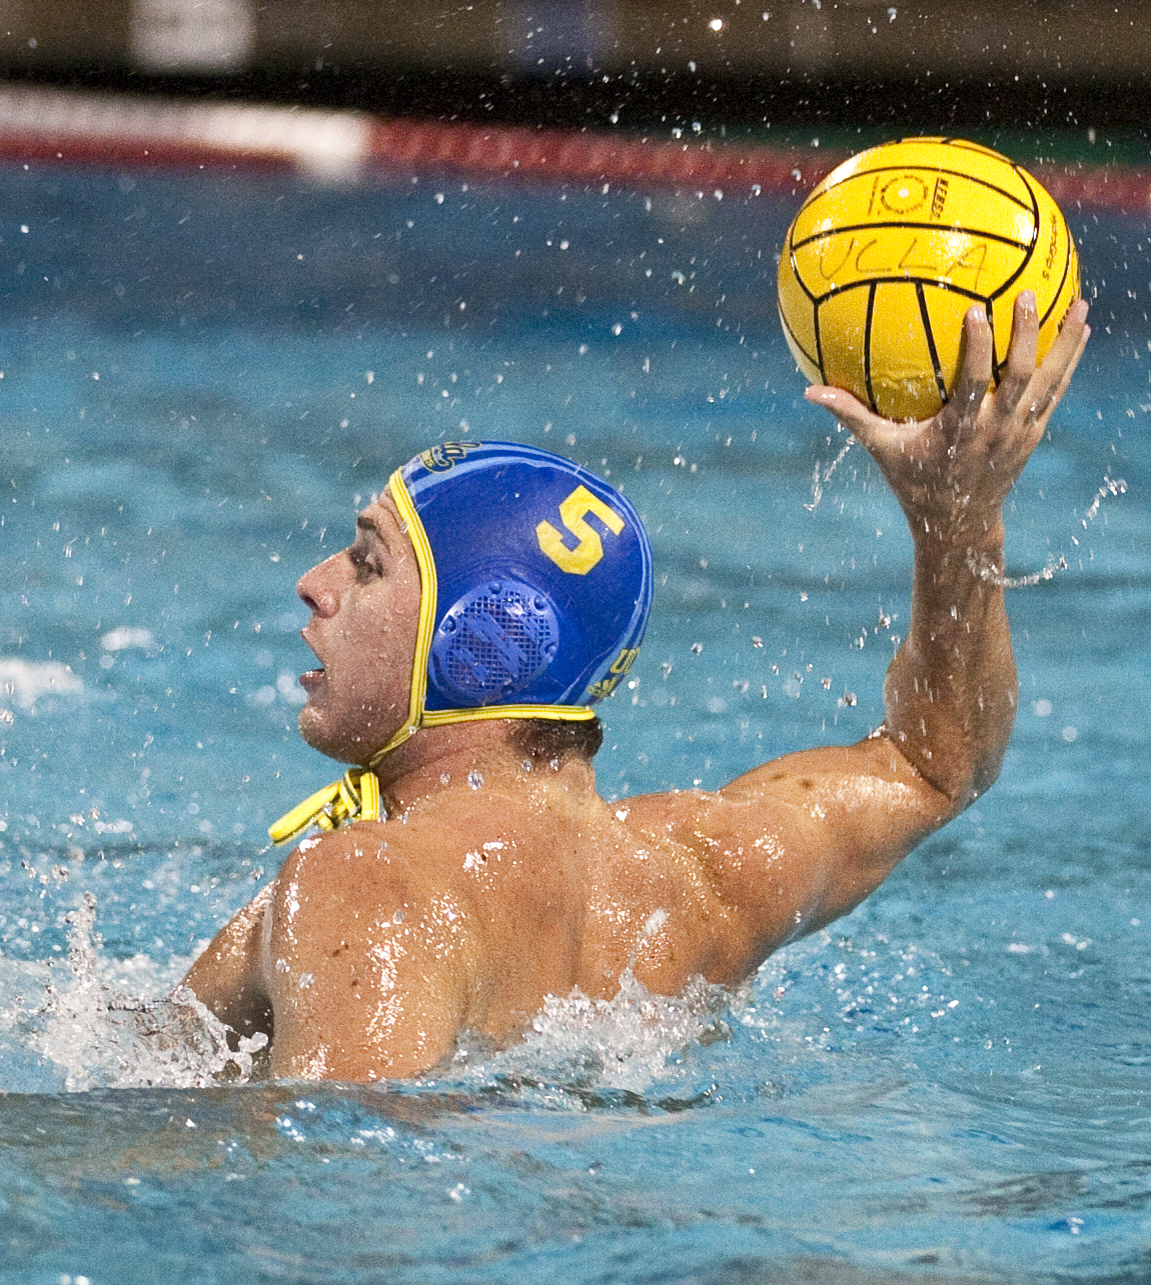 Senior attacker Griffin White and the second-ranked UCLA men's water polo team will head to USC's McDonald's Swim Stadium Friday to open up the MPSF Tournament. The Bruins won the conference title last year.